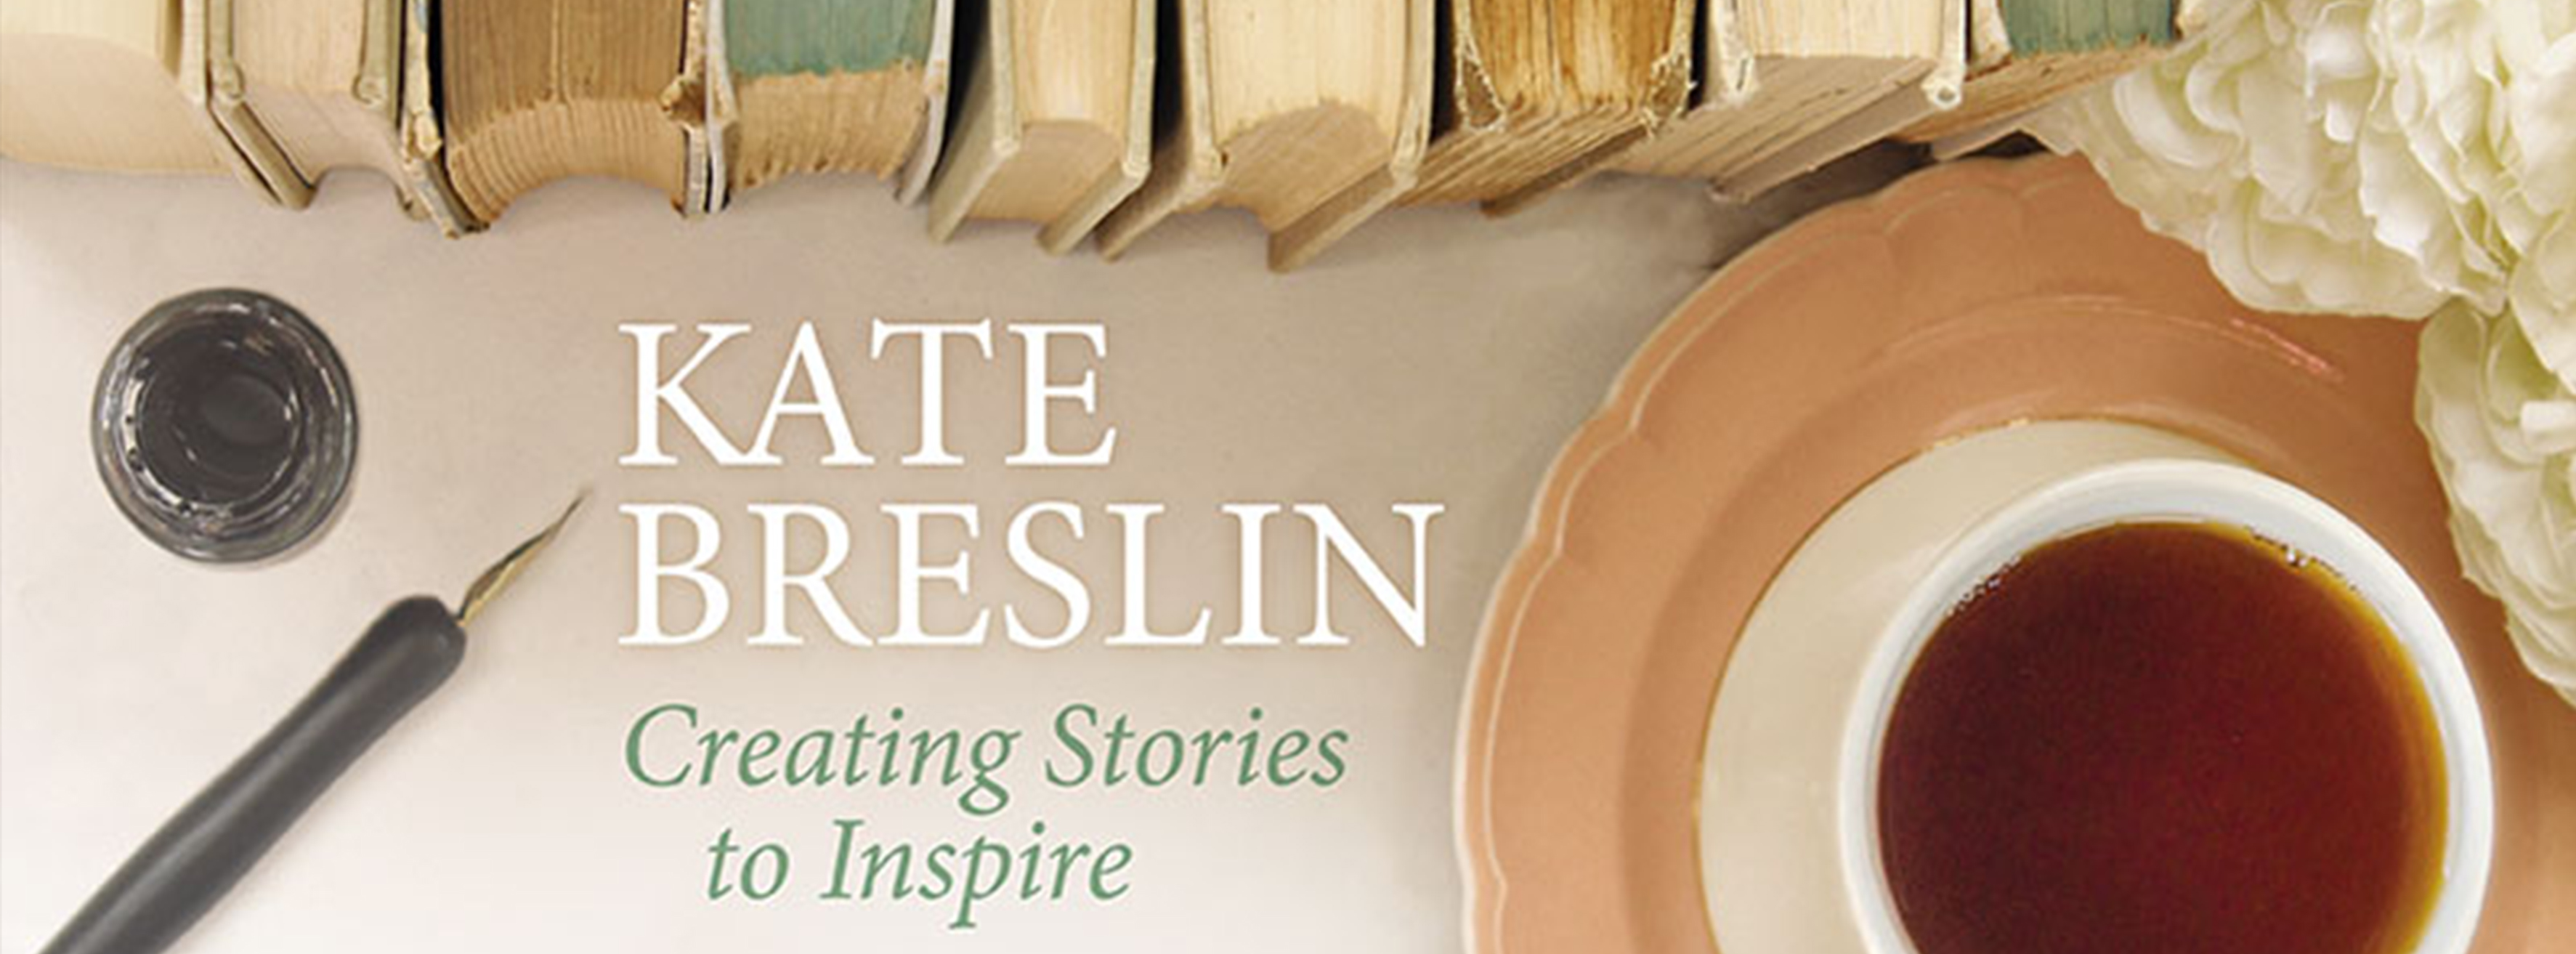 Kate Breslin Banner Creating Stories to Inspire. Historical Romance Author.